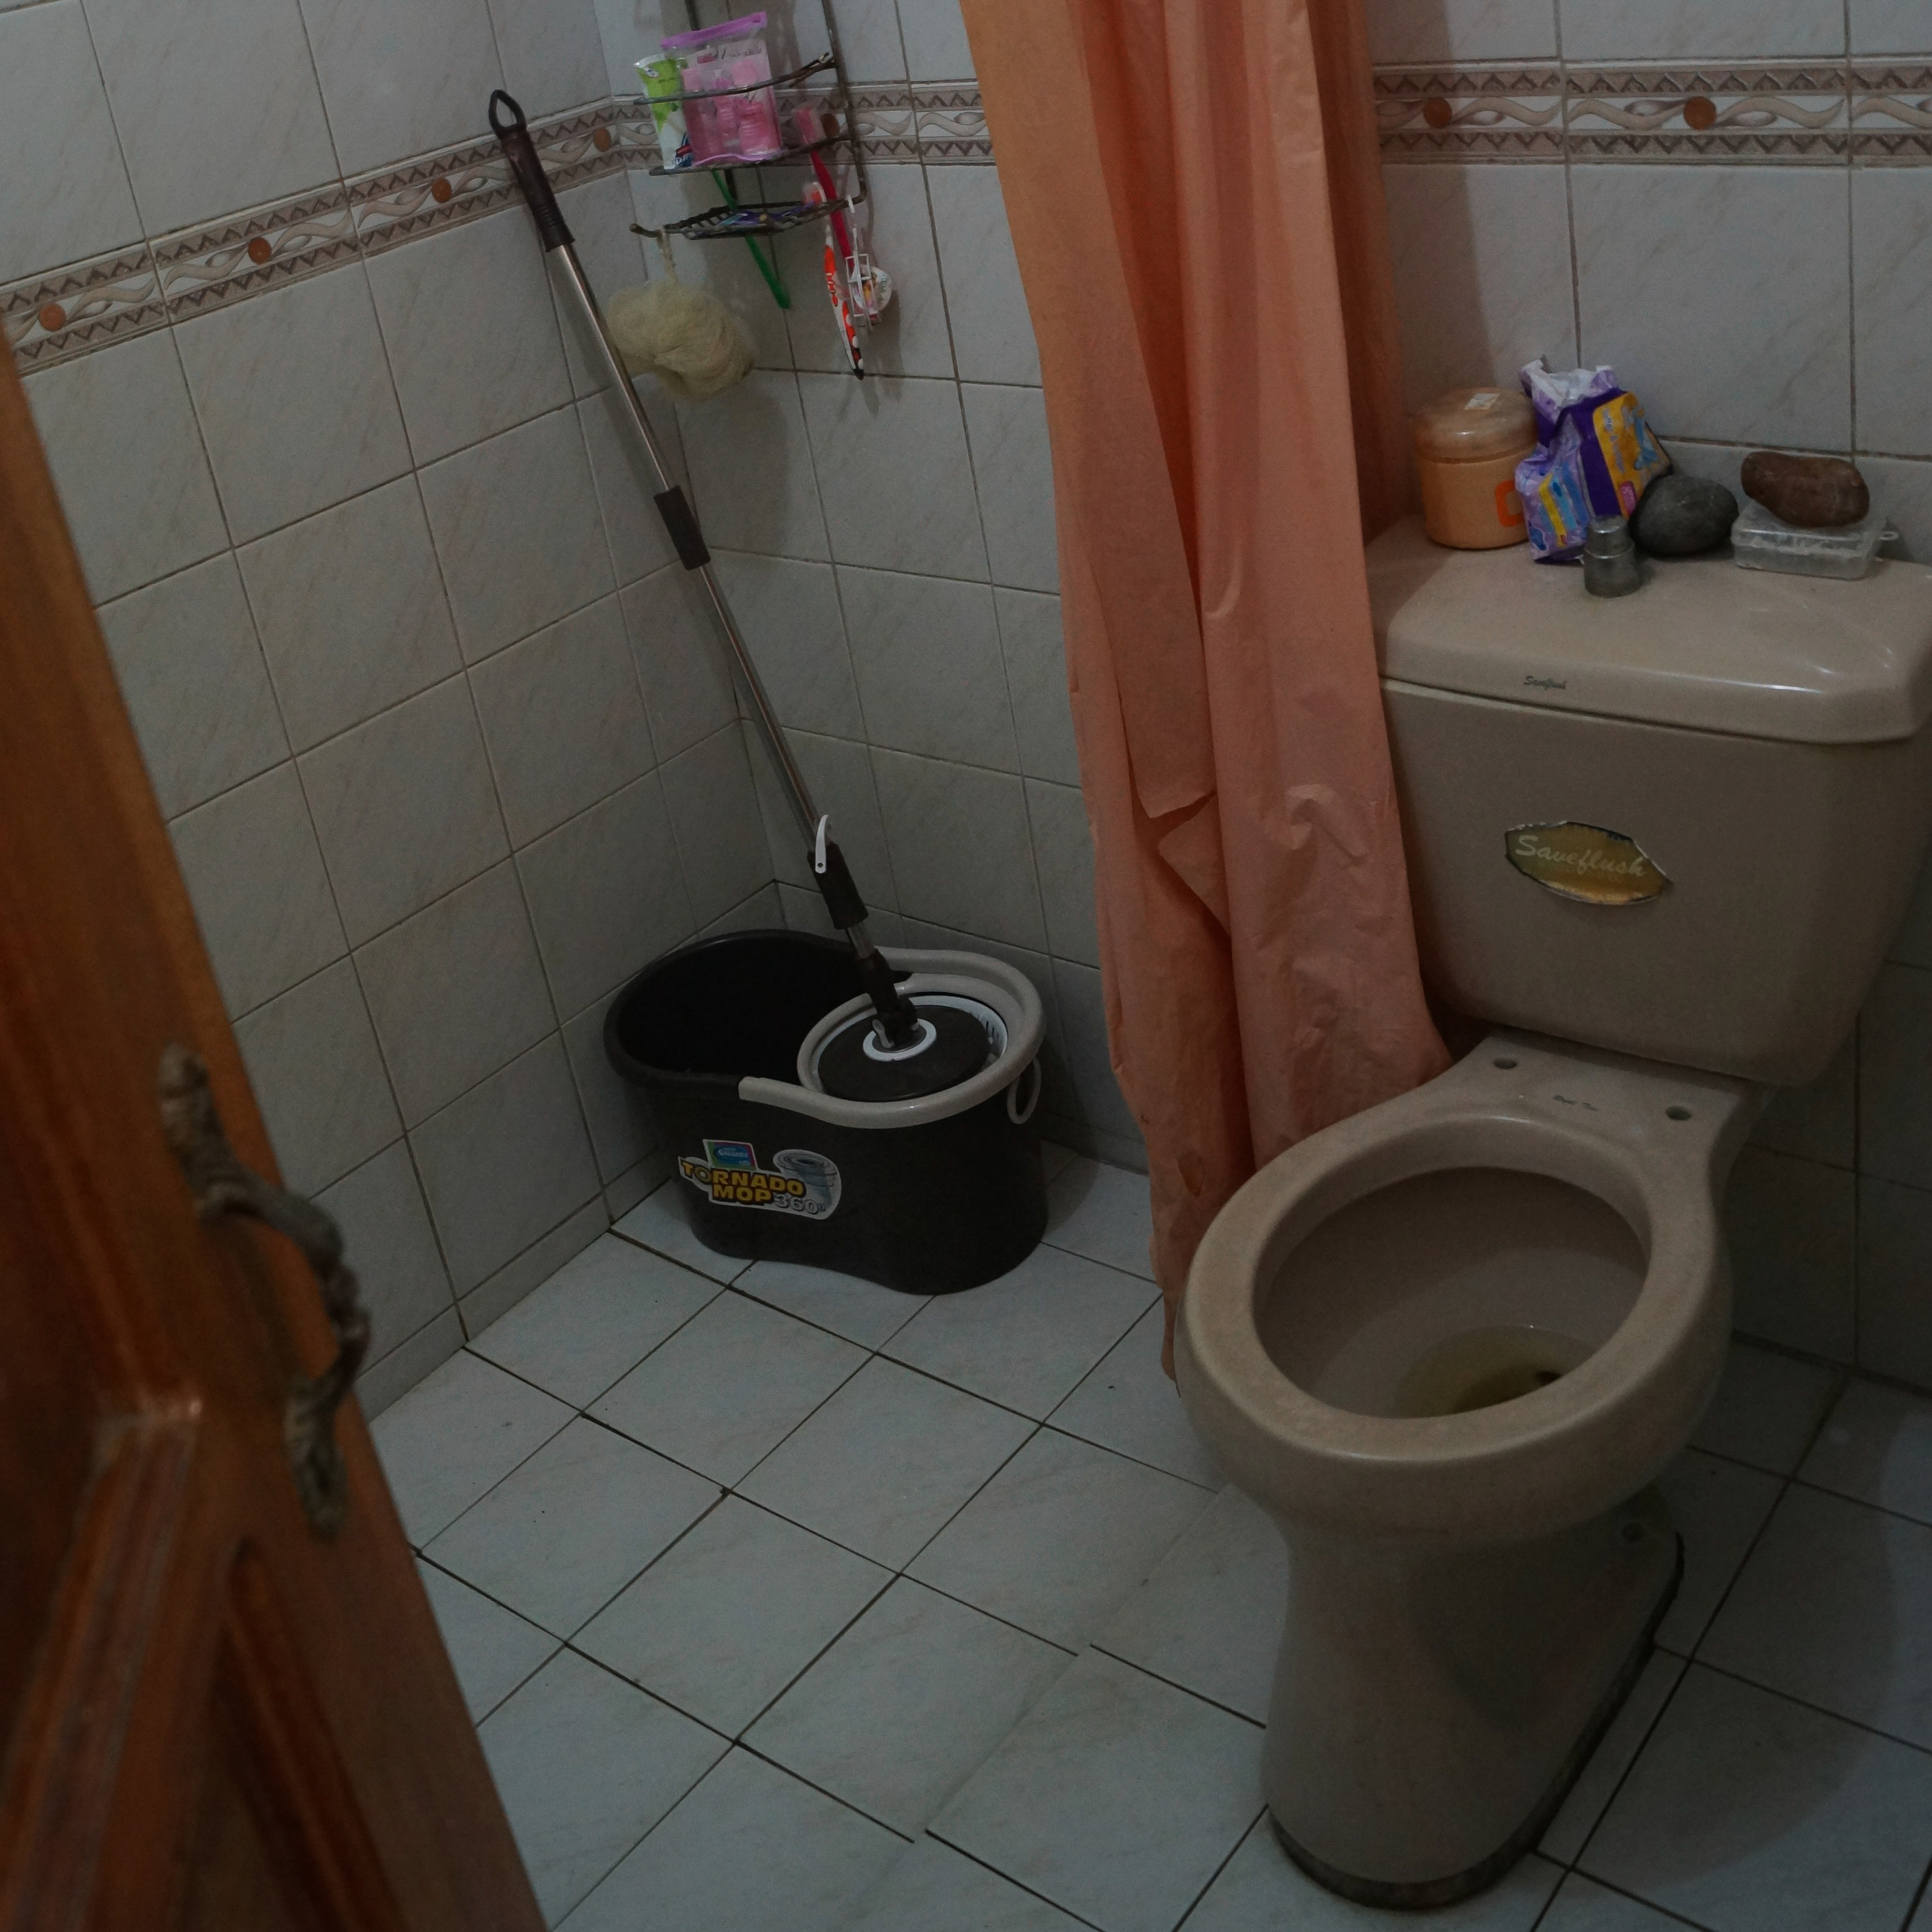 PHOTOS: Peep At The Toilets Of 7 Families Around The World